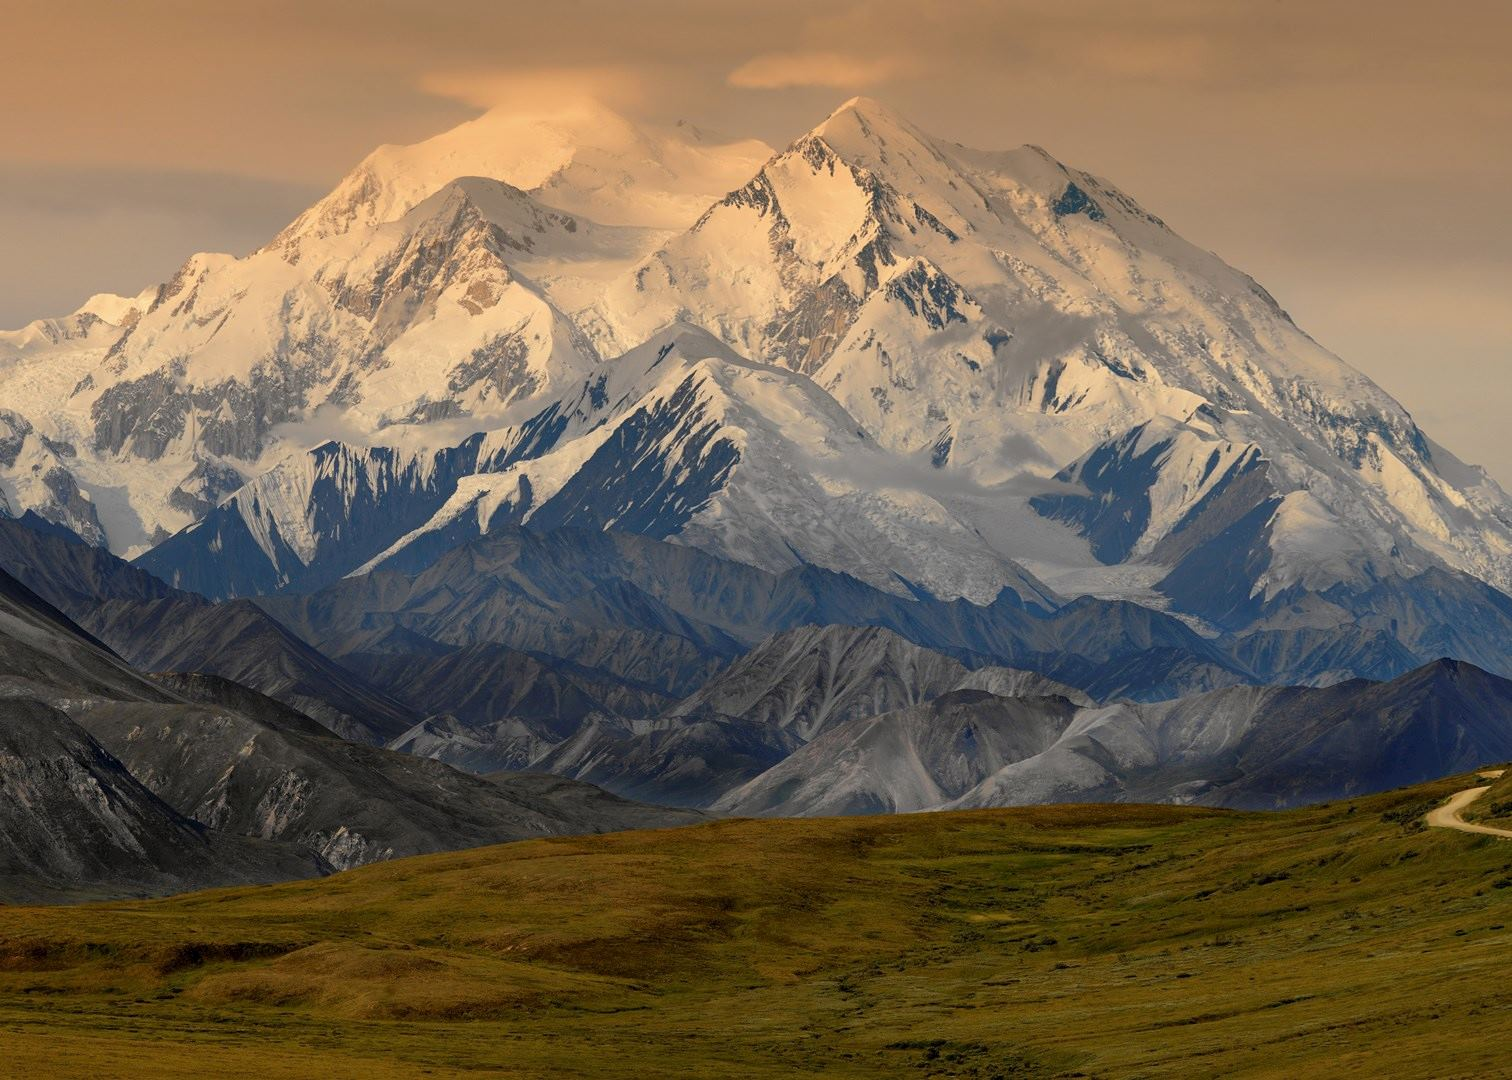 denali national park men Shop denali national park men's clothing from cafepress find great designs on t-shirts, hoodies, pajamas, sweatshirts, boxer shorts and more free returns 100% satisfaction guarantee fast shipping.